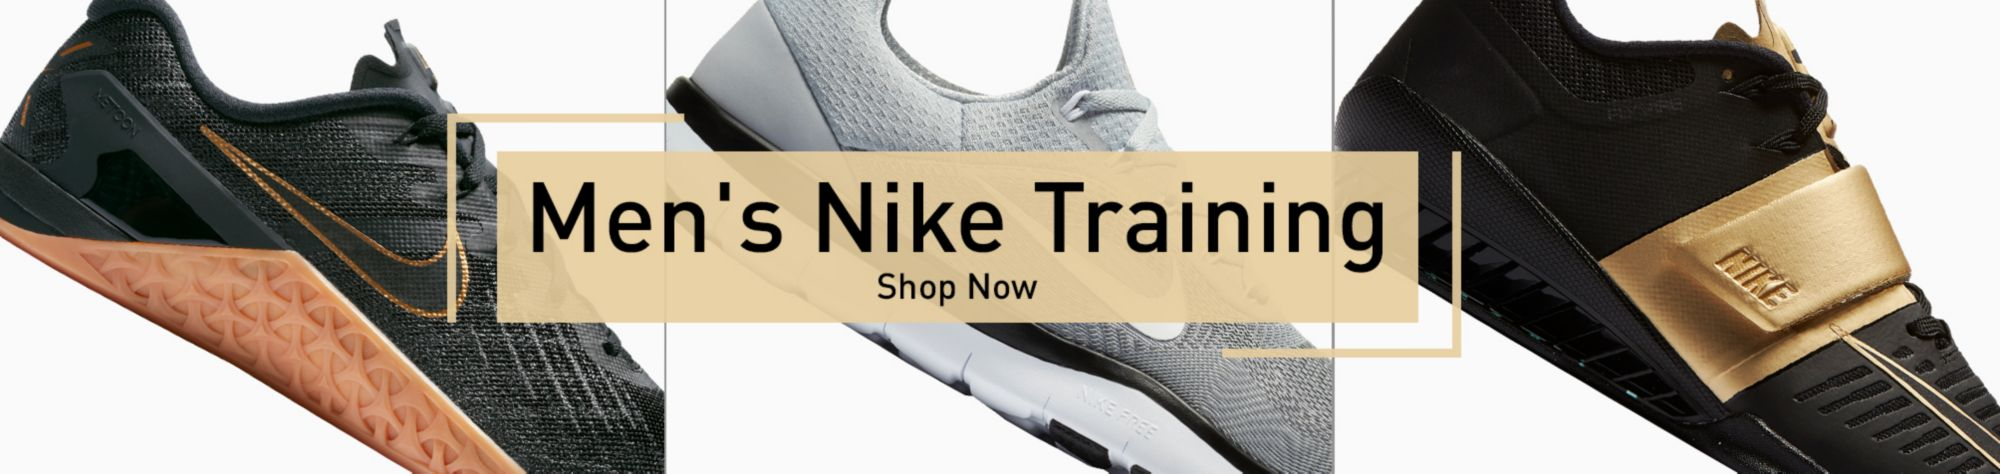 Shop Nike Men's Training Shoes